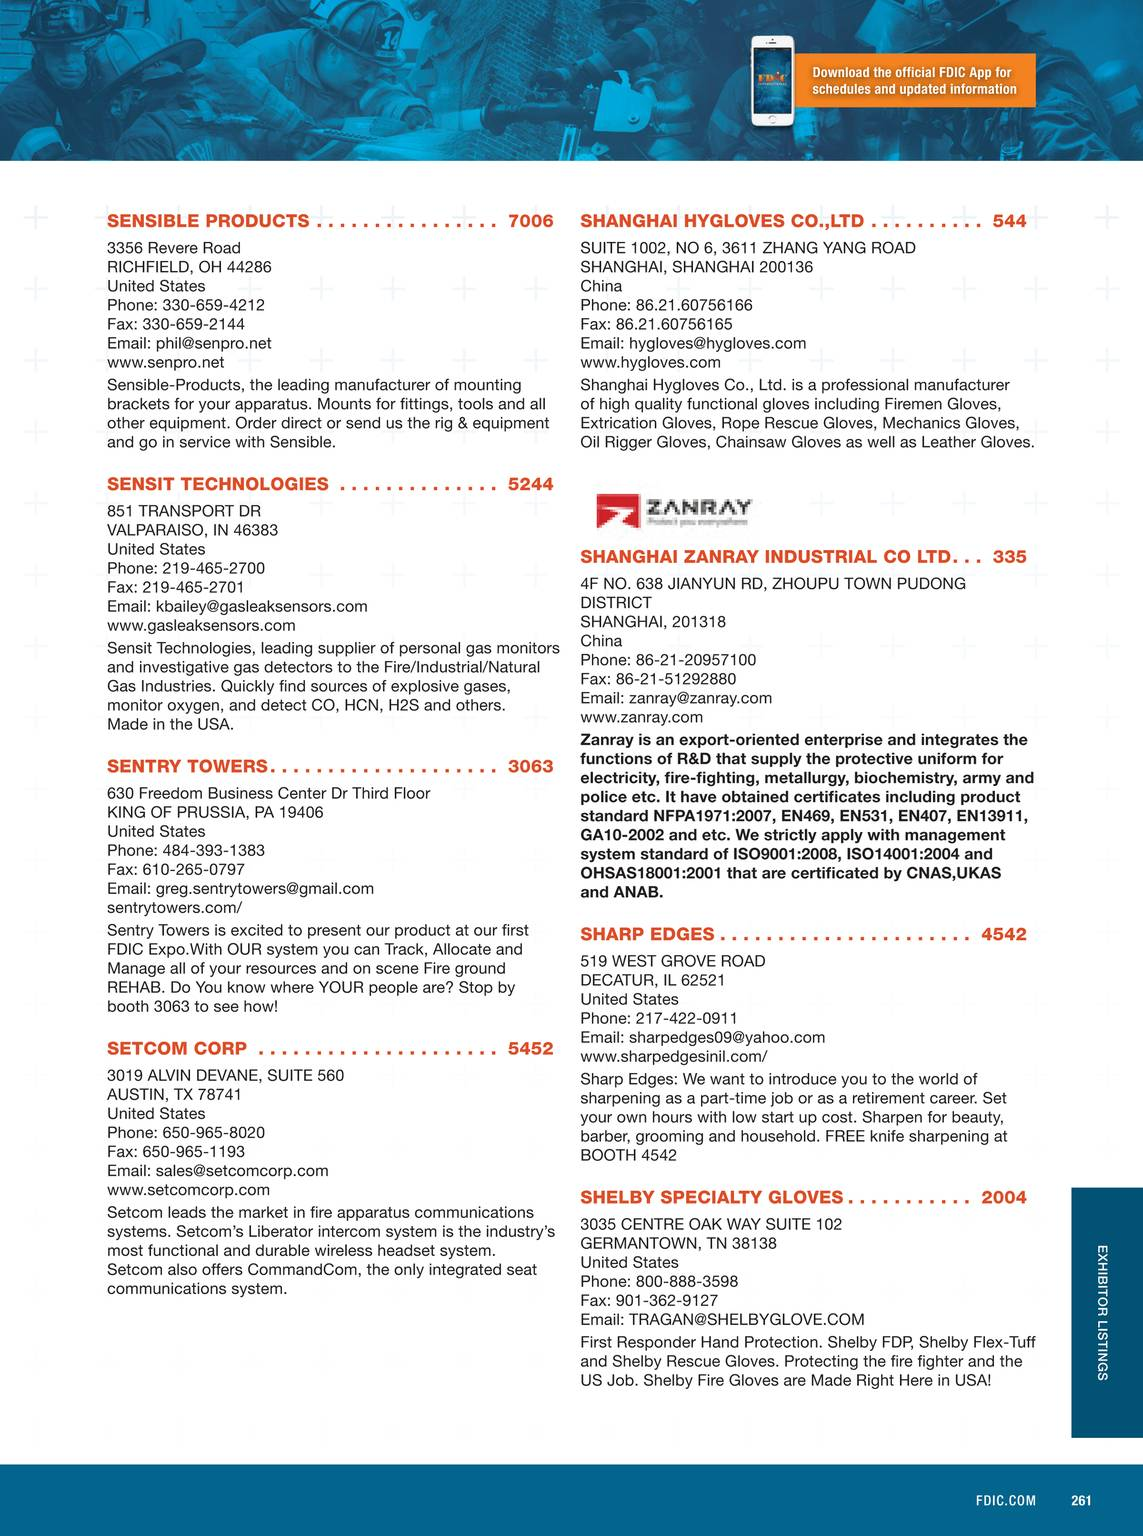 Pennwell Supplements - FDIC 2015 Event Guide - page 262